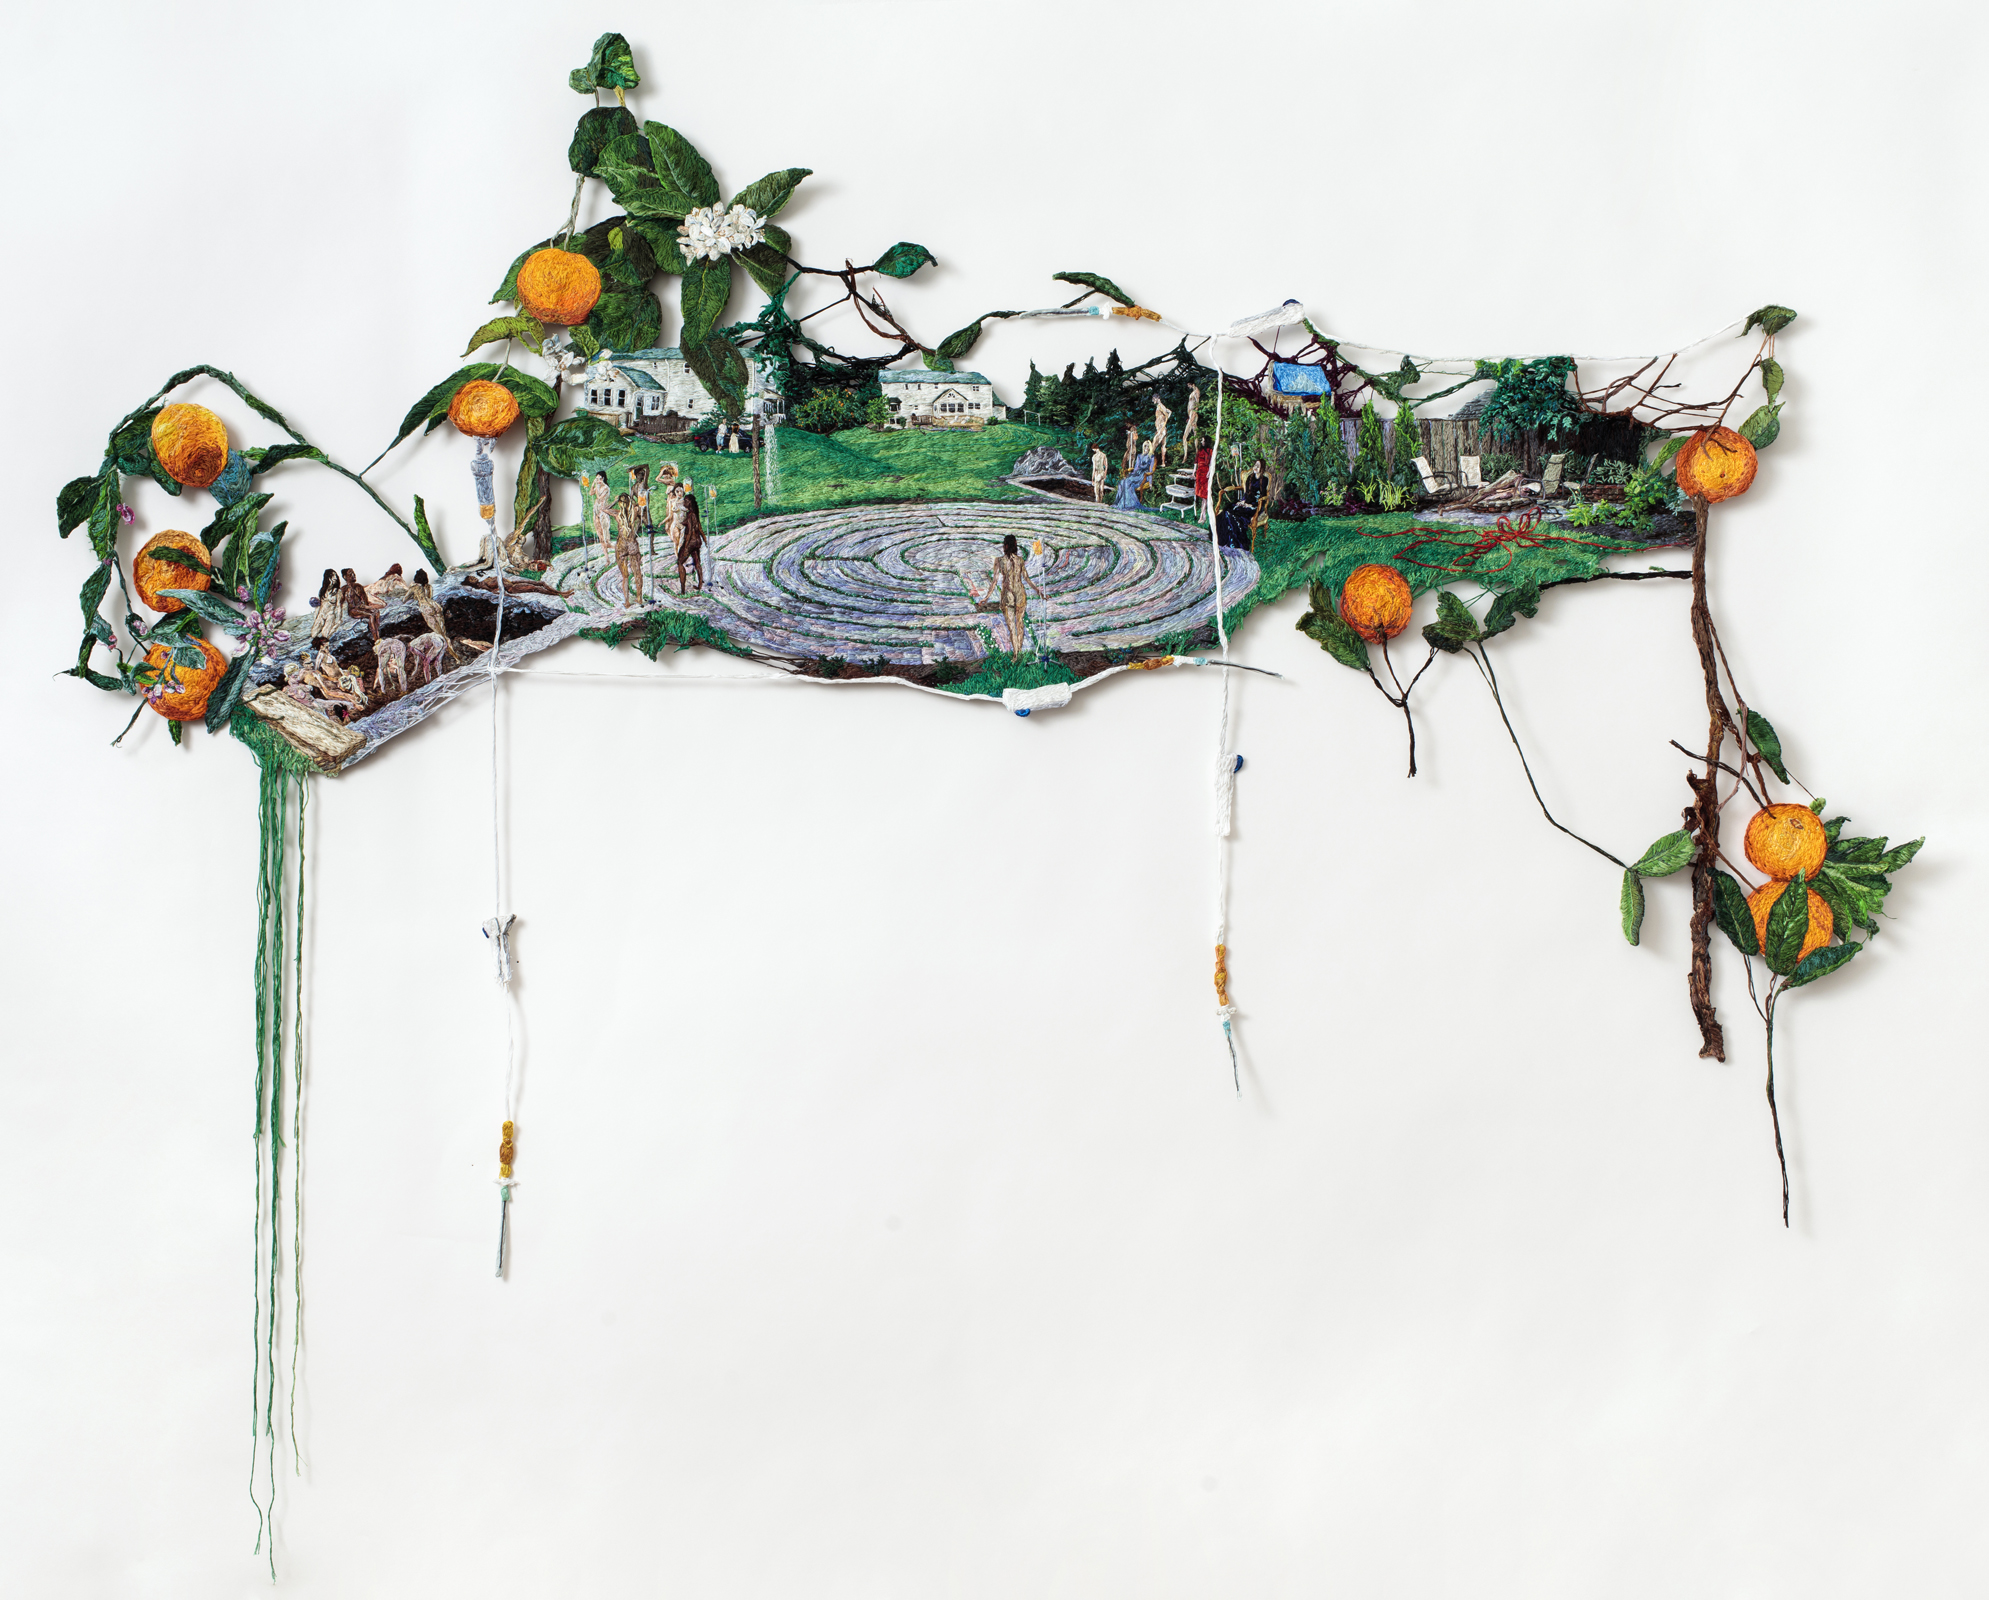 Stuck  , 2016, Embroidery Thread and Fabric, 62 in x 38 in